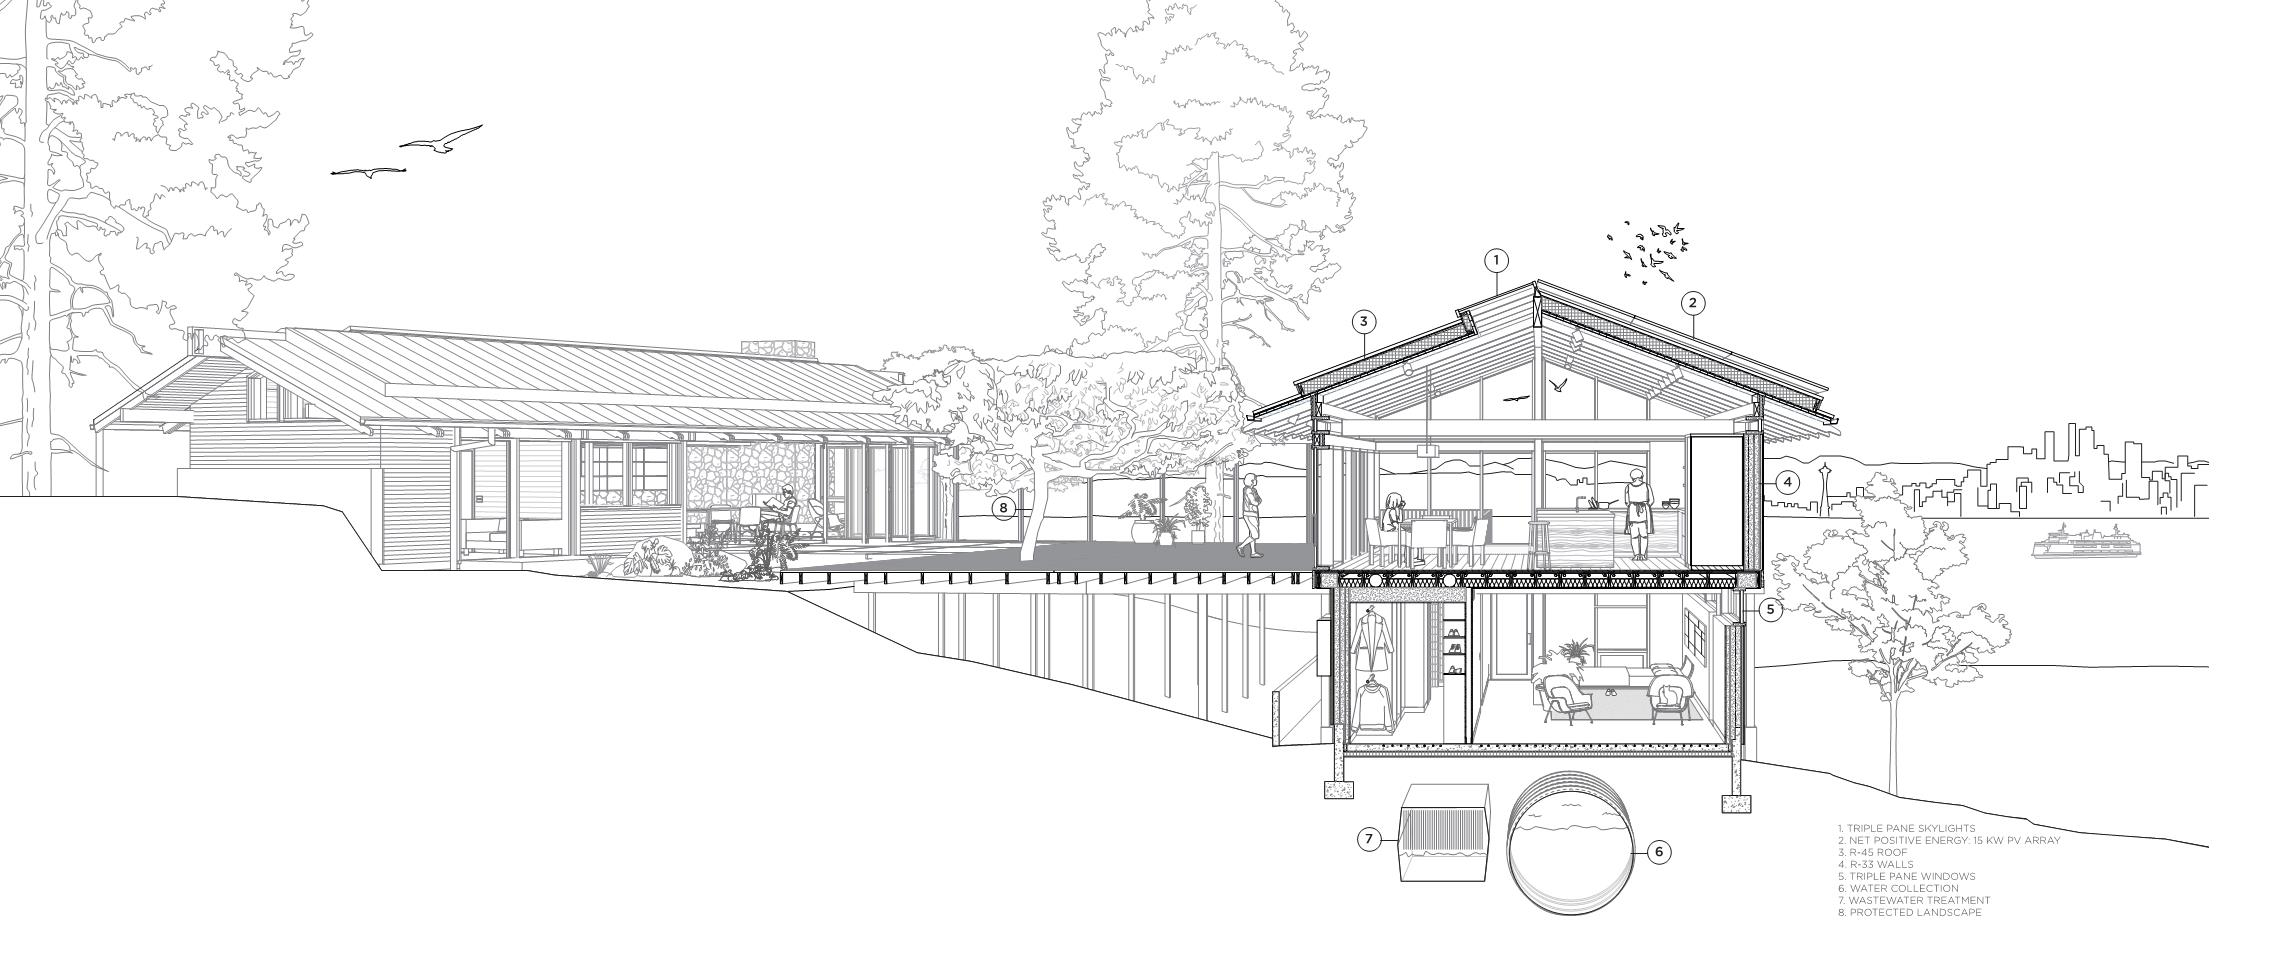 Architectural rendering by The Miller Hull Partnership of the Loom house